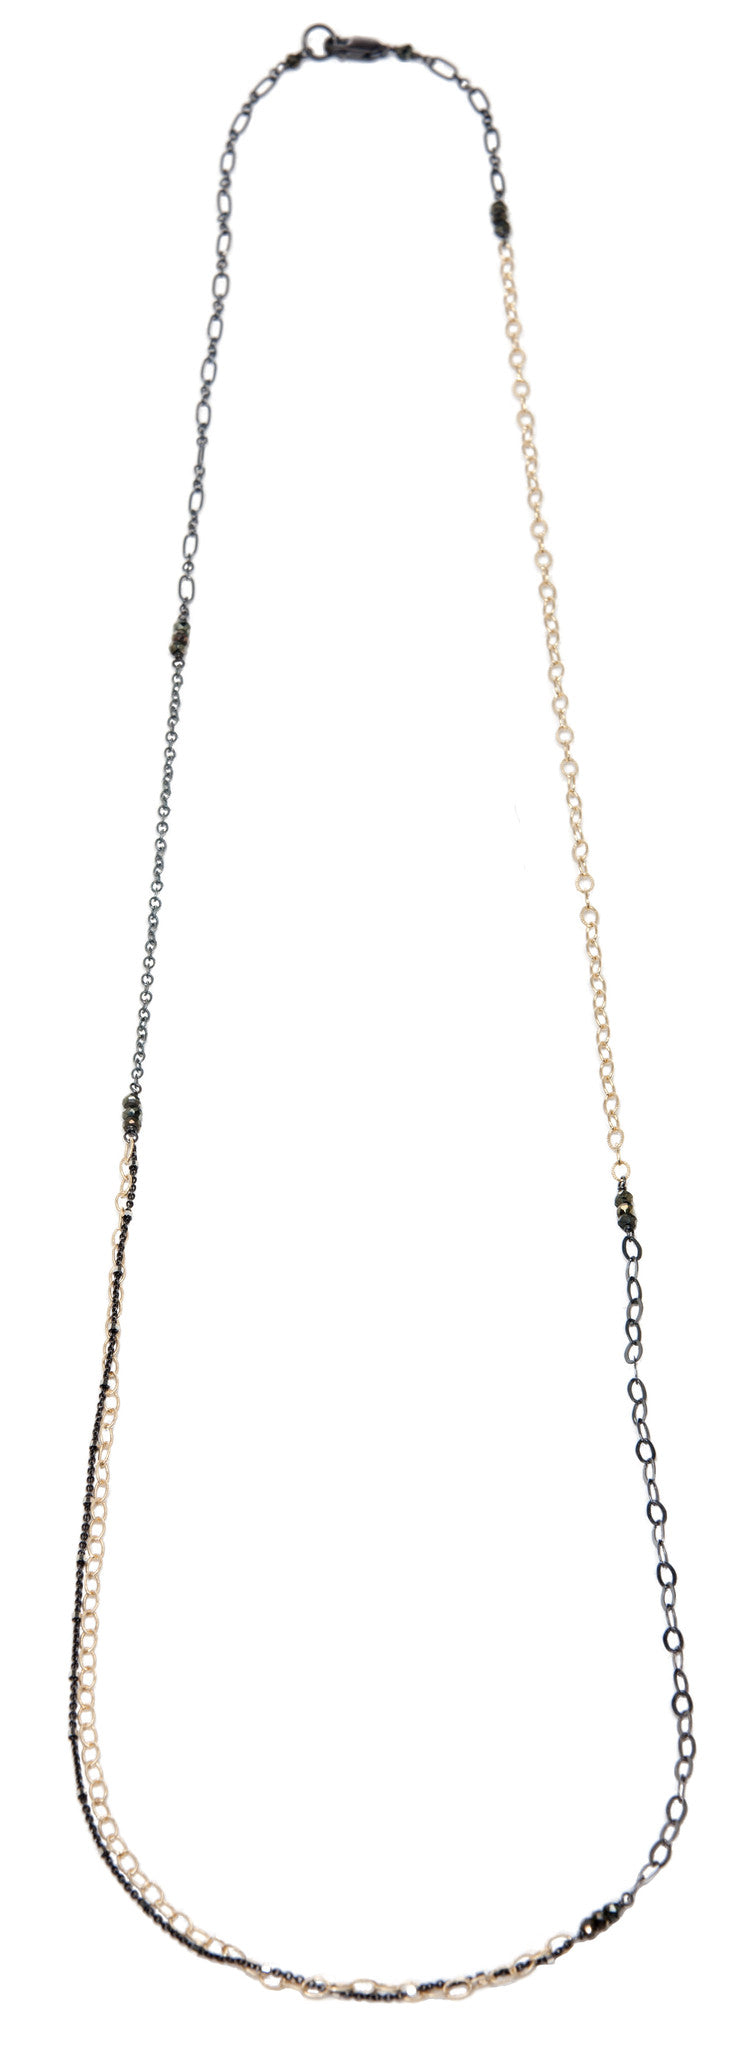 layering chain necklace - oxidized silver and gold filled